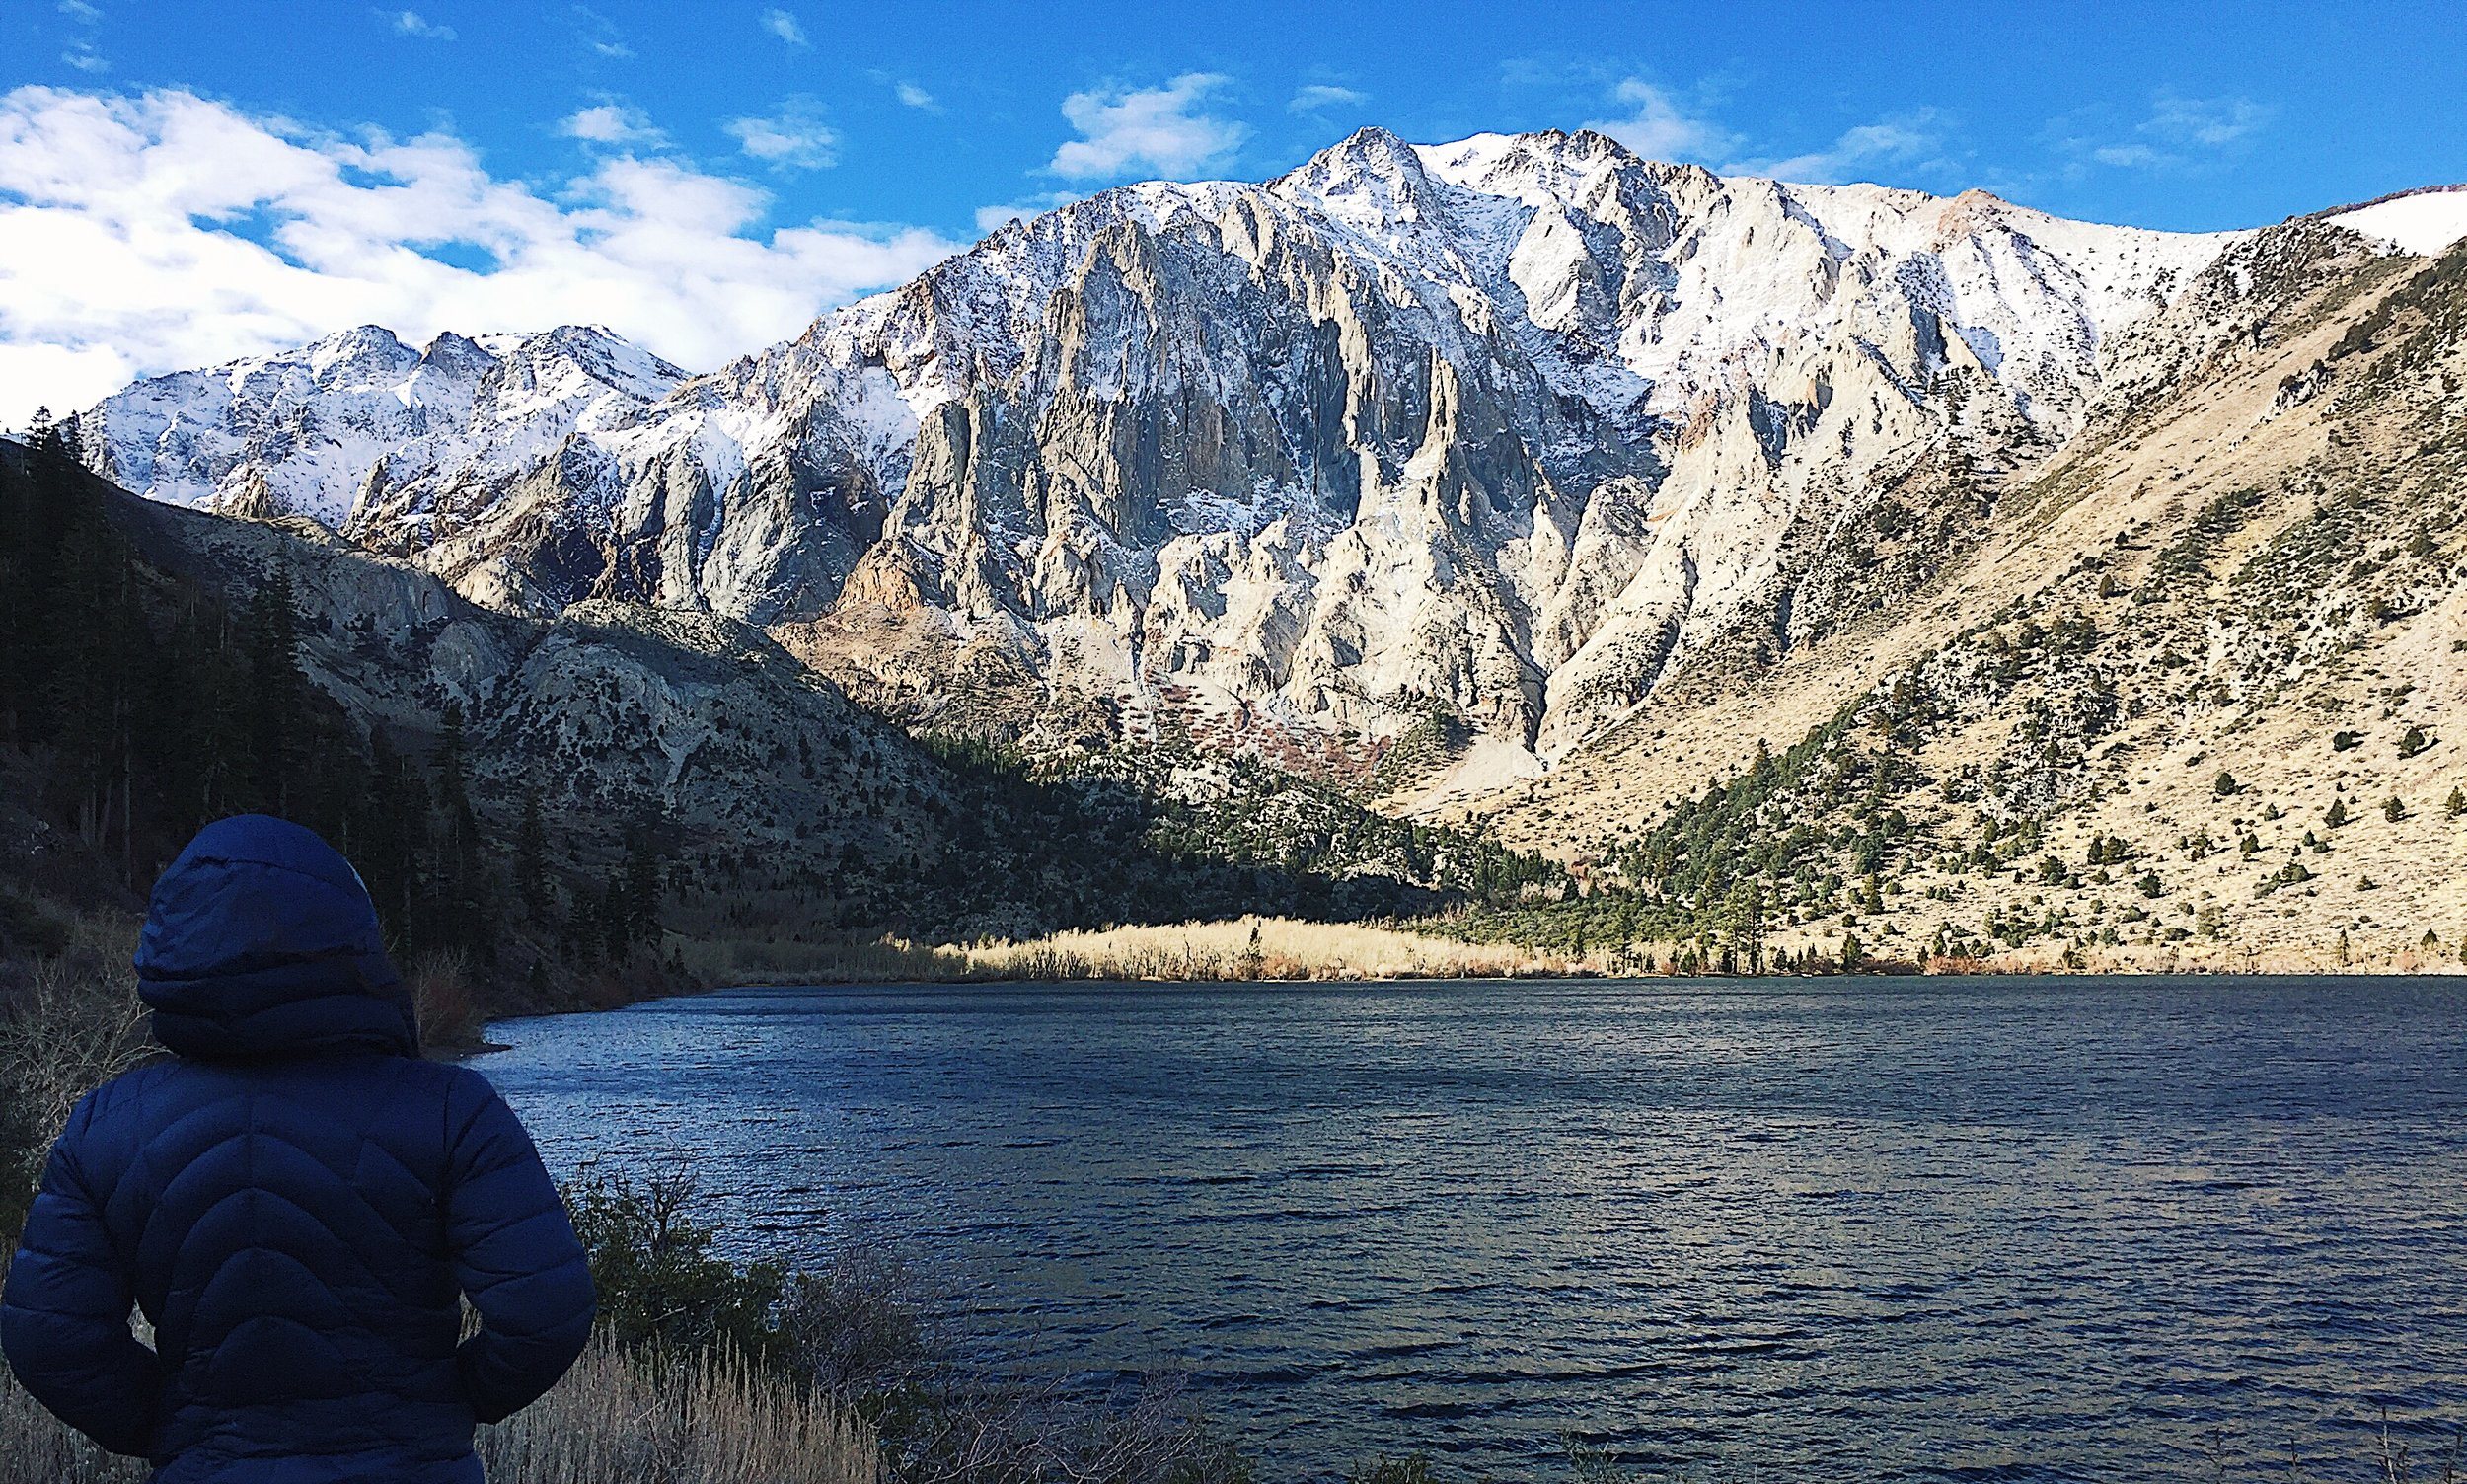 Admiring the view at Convict Lake.